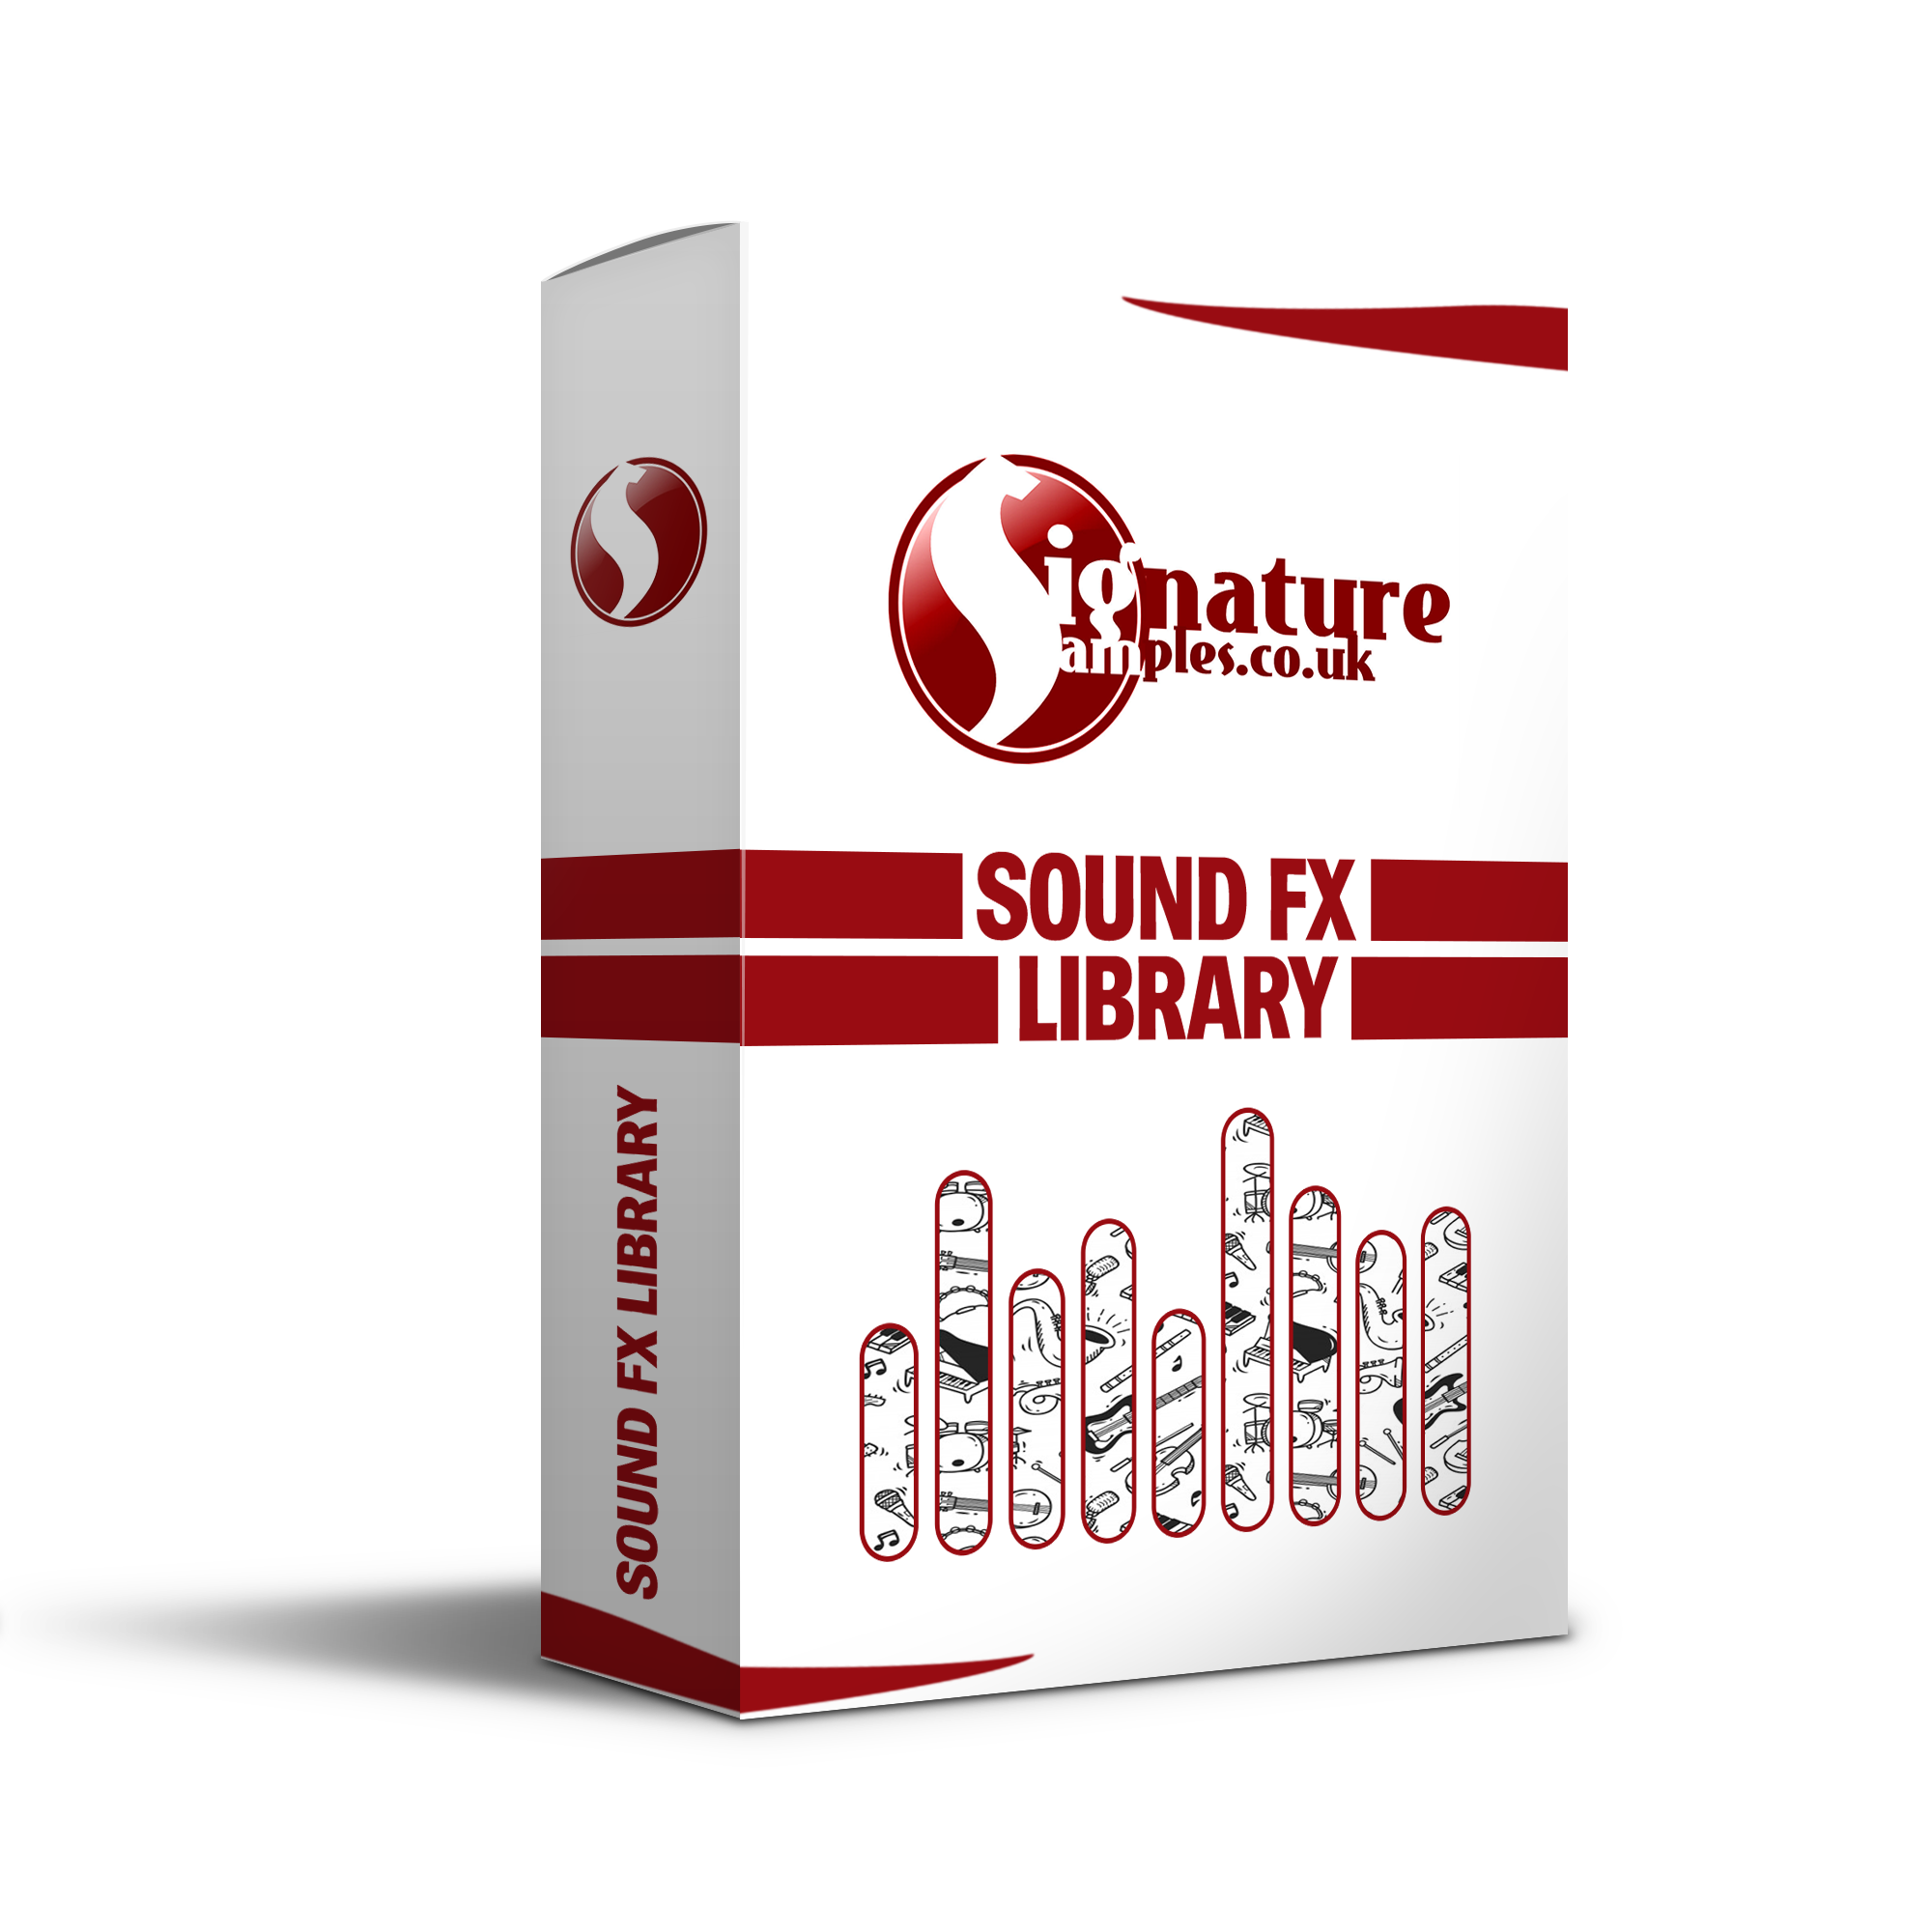 Sound FX Library - £1.89 - Sound FX library filled with high quality sound FX that could be used for .a variety of different situations. Music production, TV, Film or game design. Fx covering a wide range of different scenarios can be found within this pack.